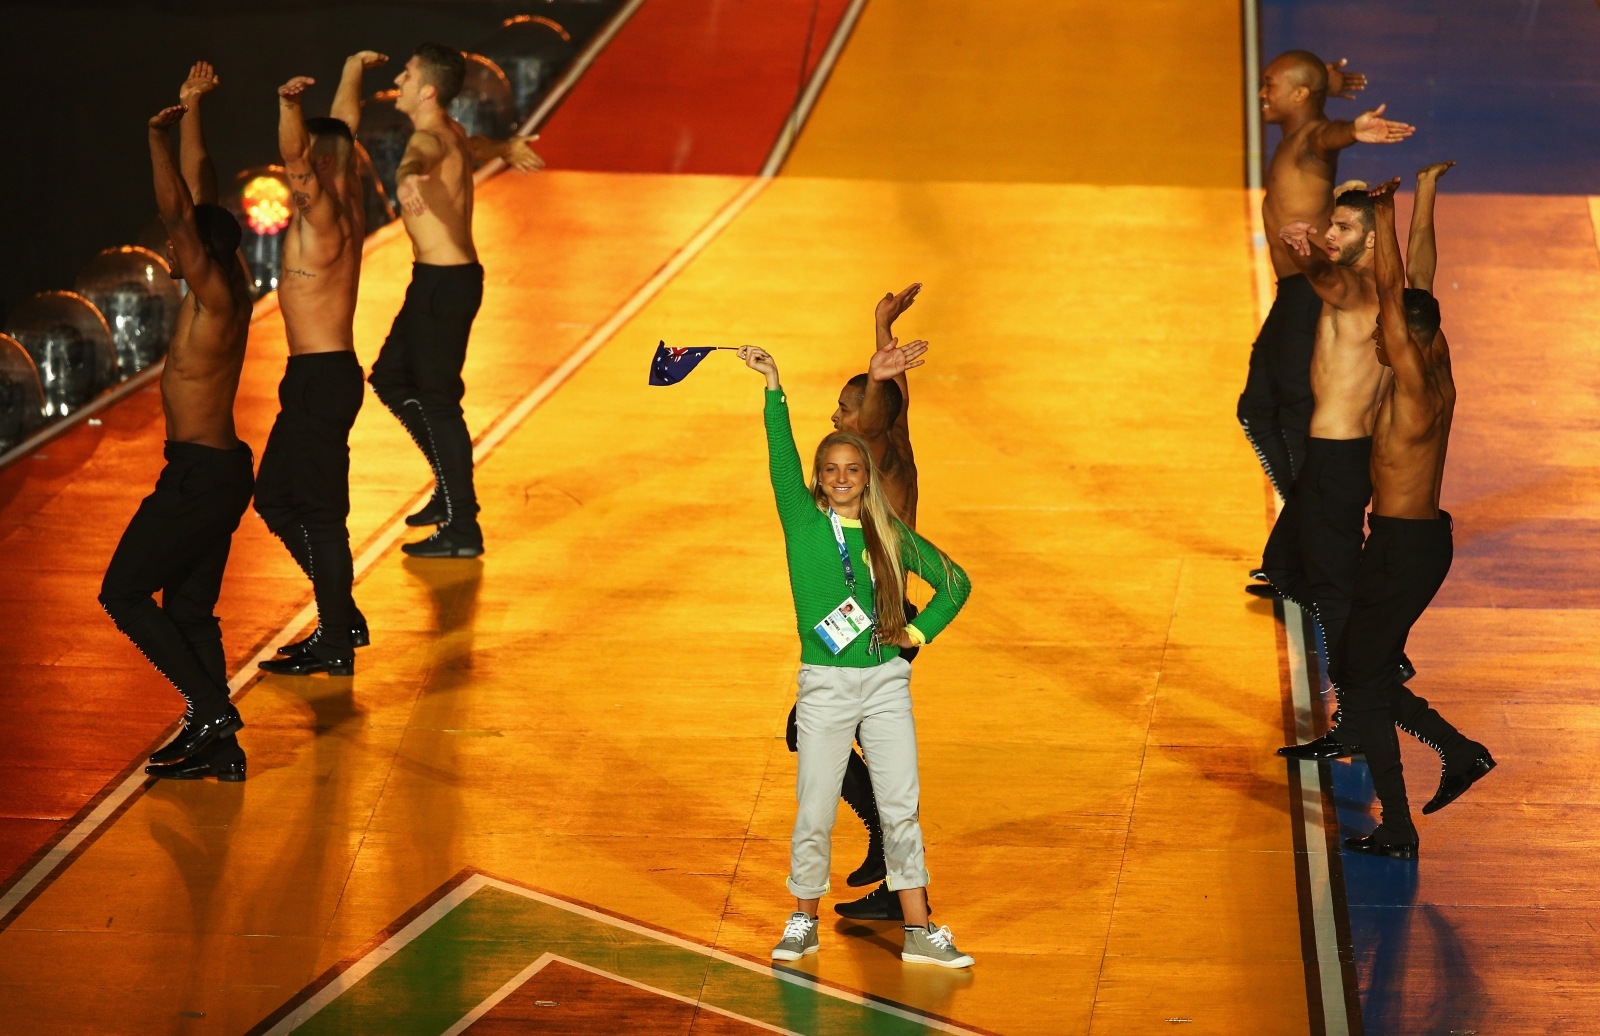 Genevieve LaCaze stage-bombed Kylie Minogue during the Commonwealth Games' closing ceremony